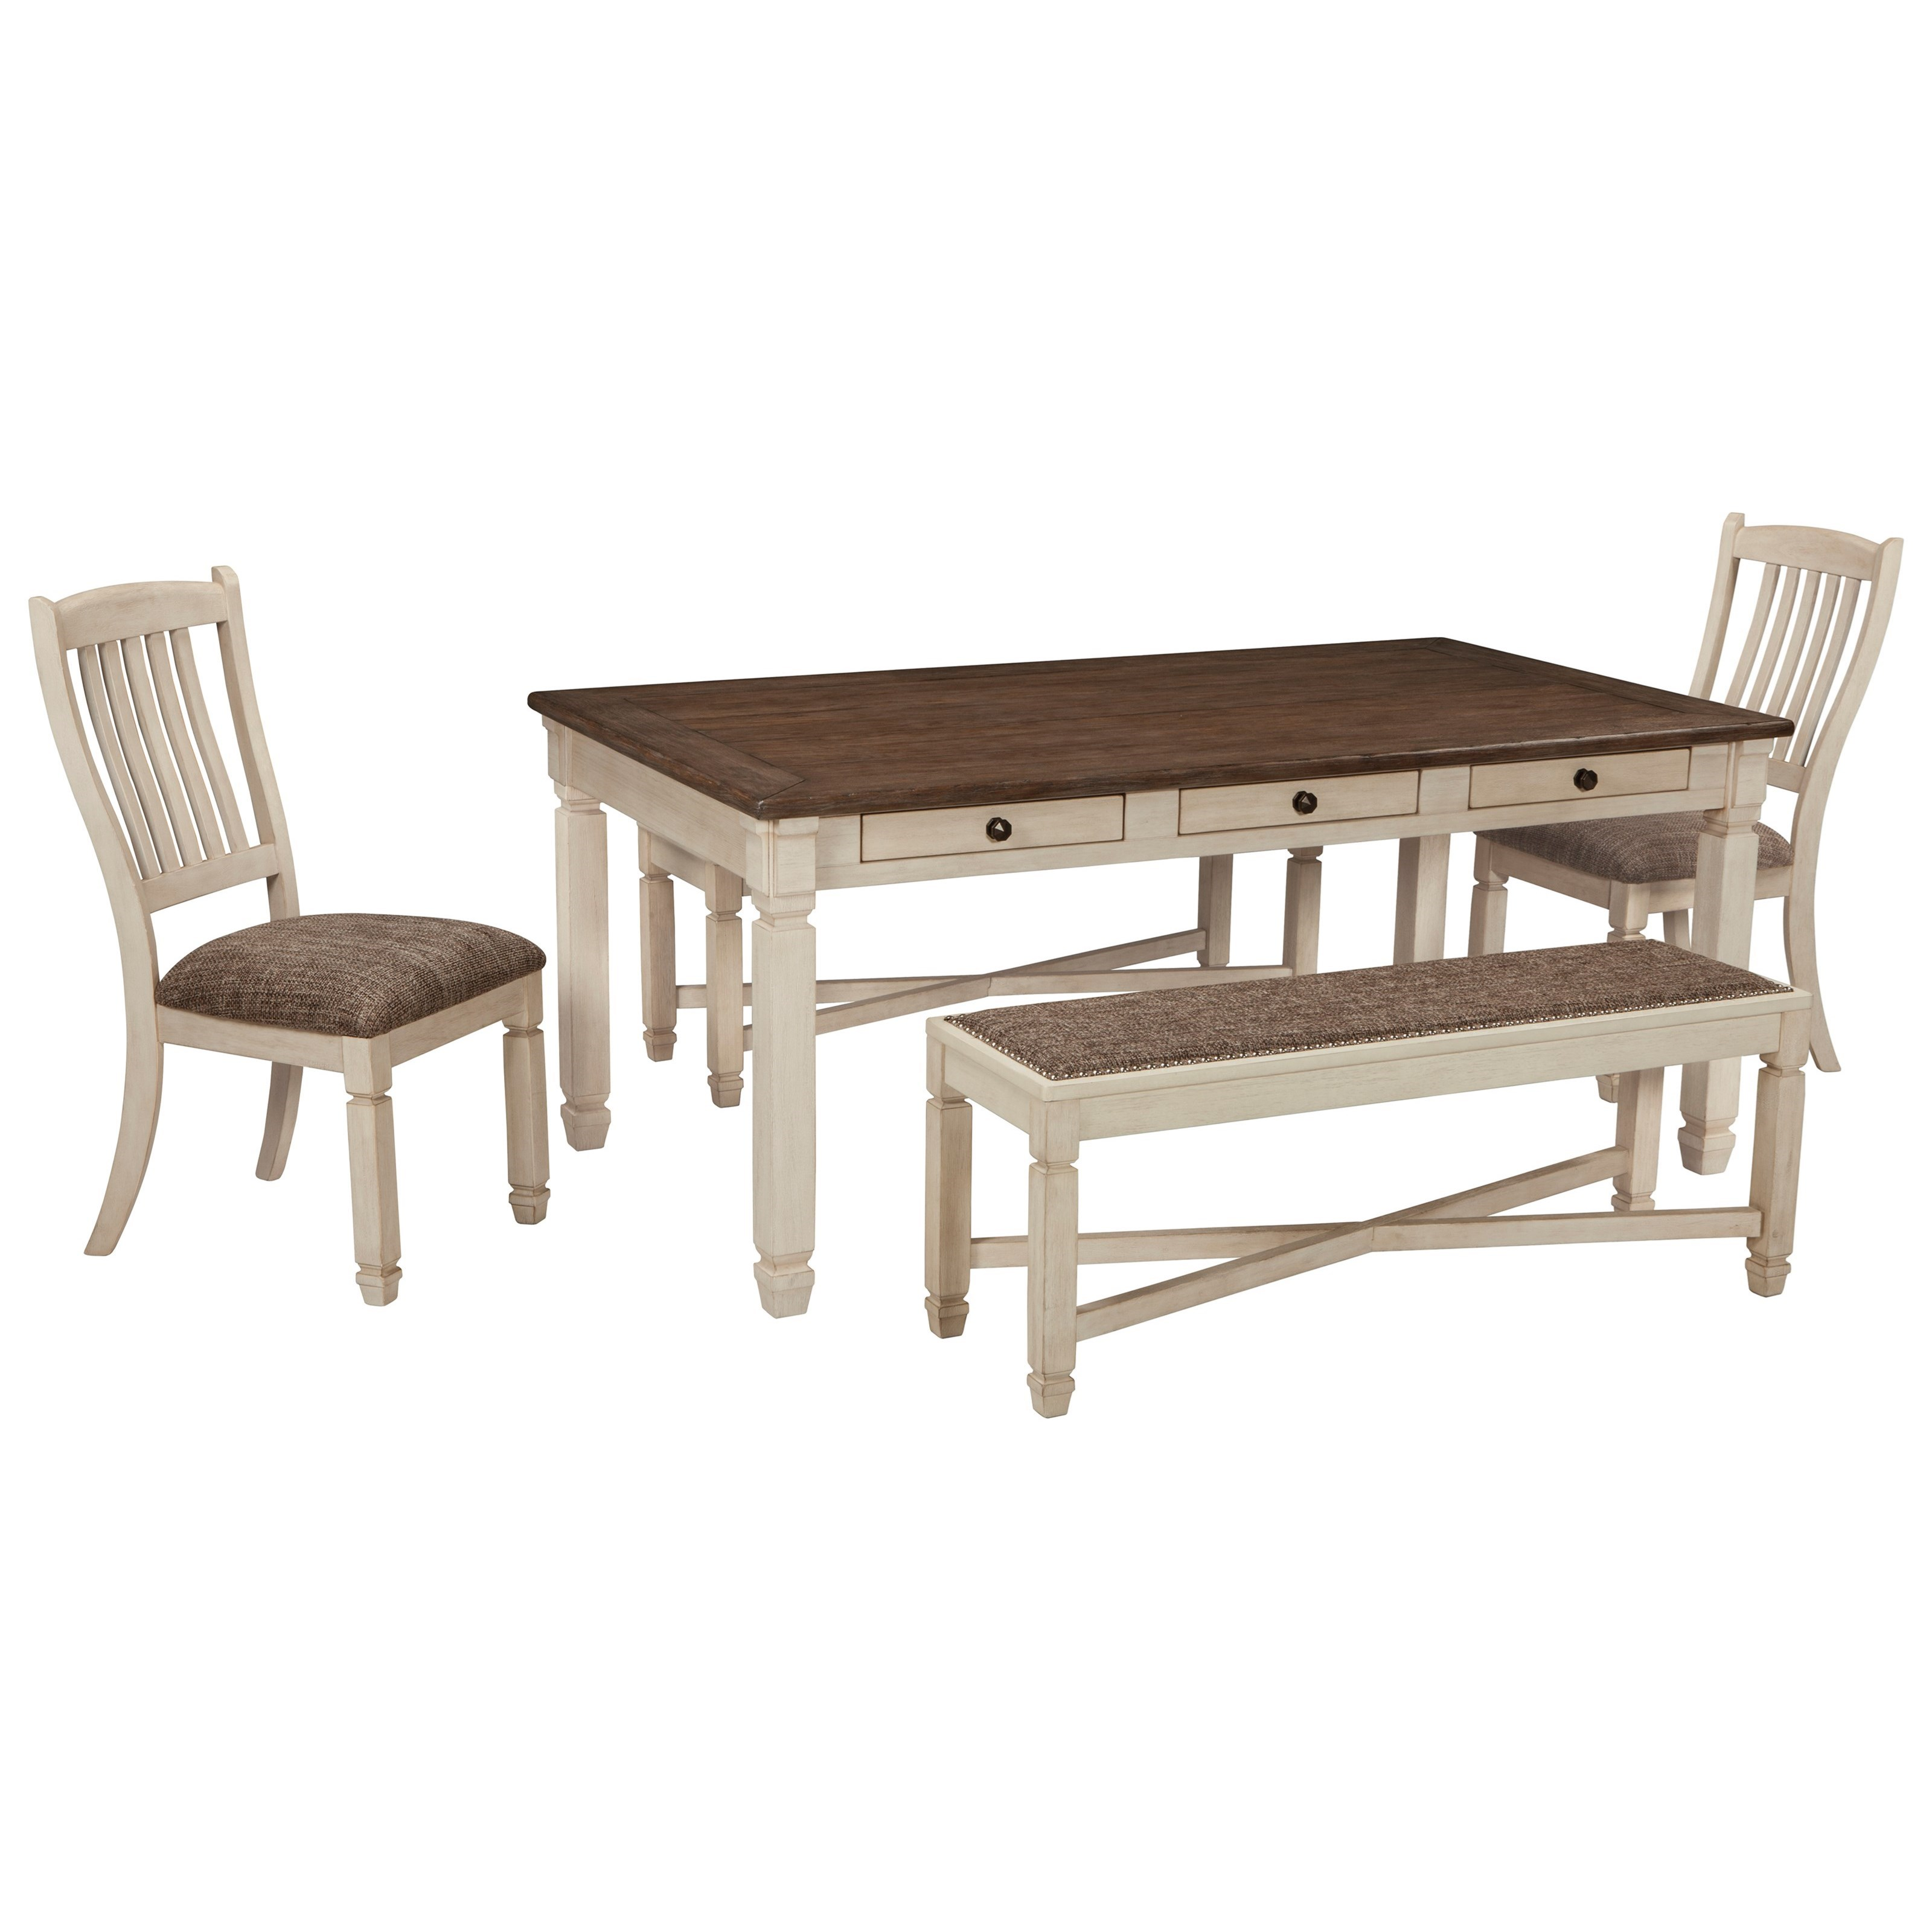 Admirable Relaxed Vintage Table And Chair Set With Two Benches By Gmtry Best Dining Table And Chair Ideas Images Gmtryco